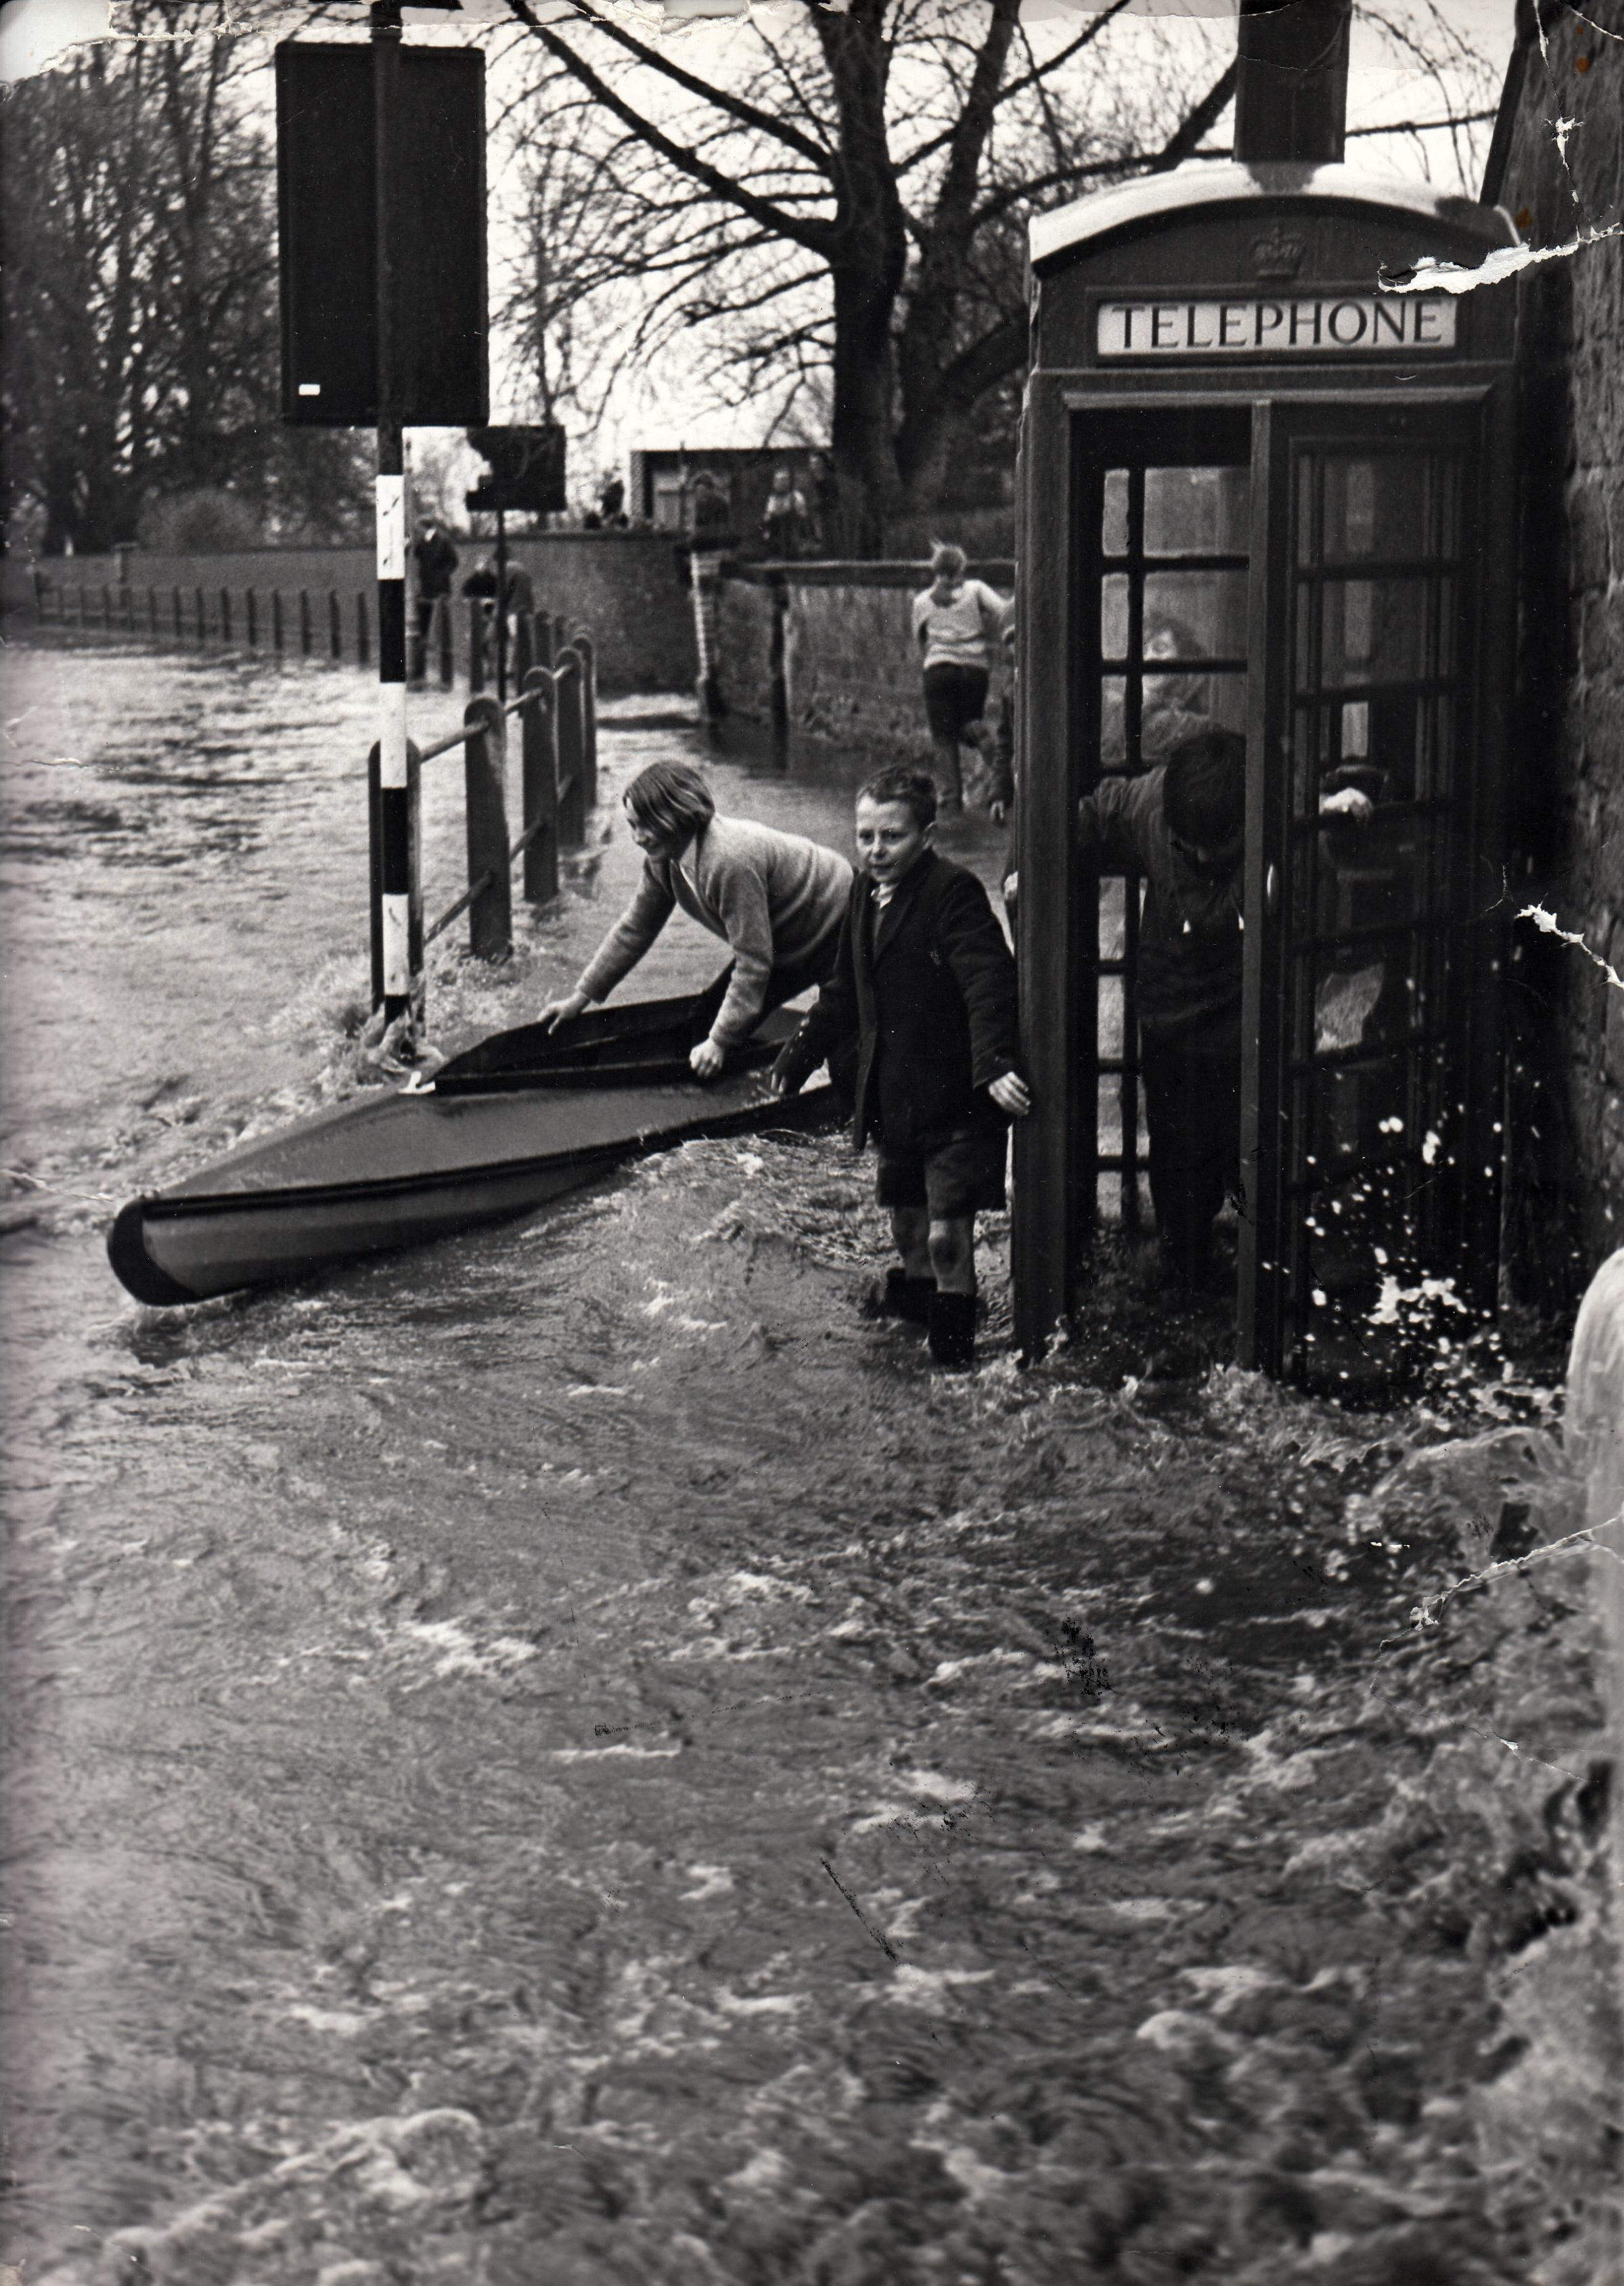 Flooding – it's not a new problem as these 1960s photos show